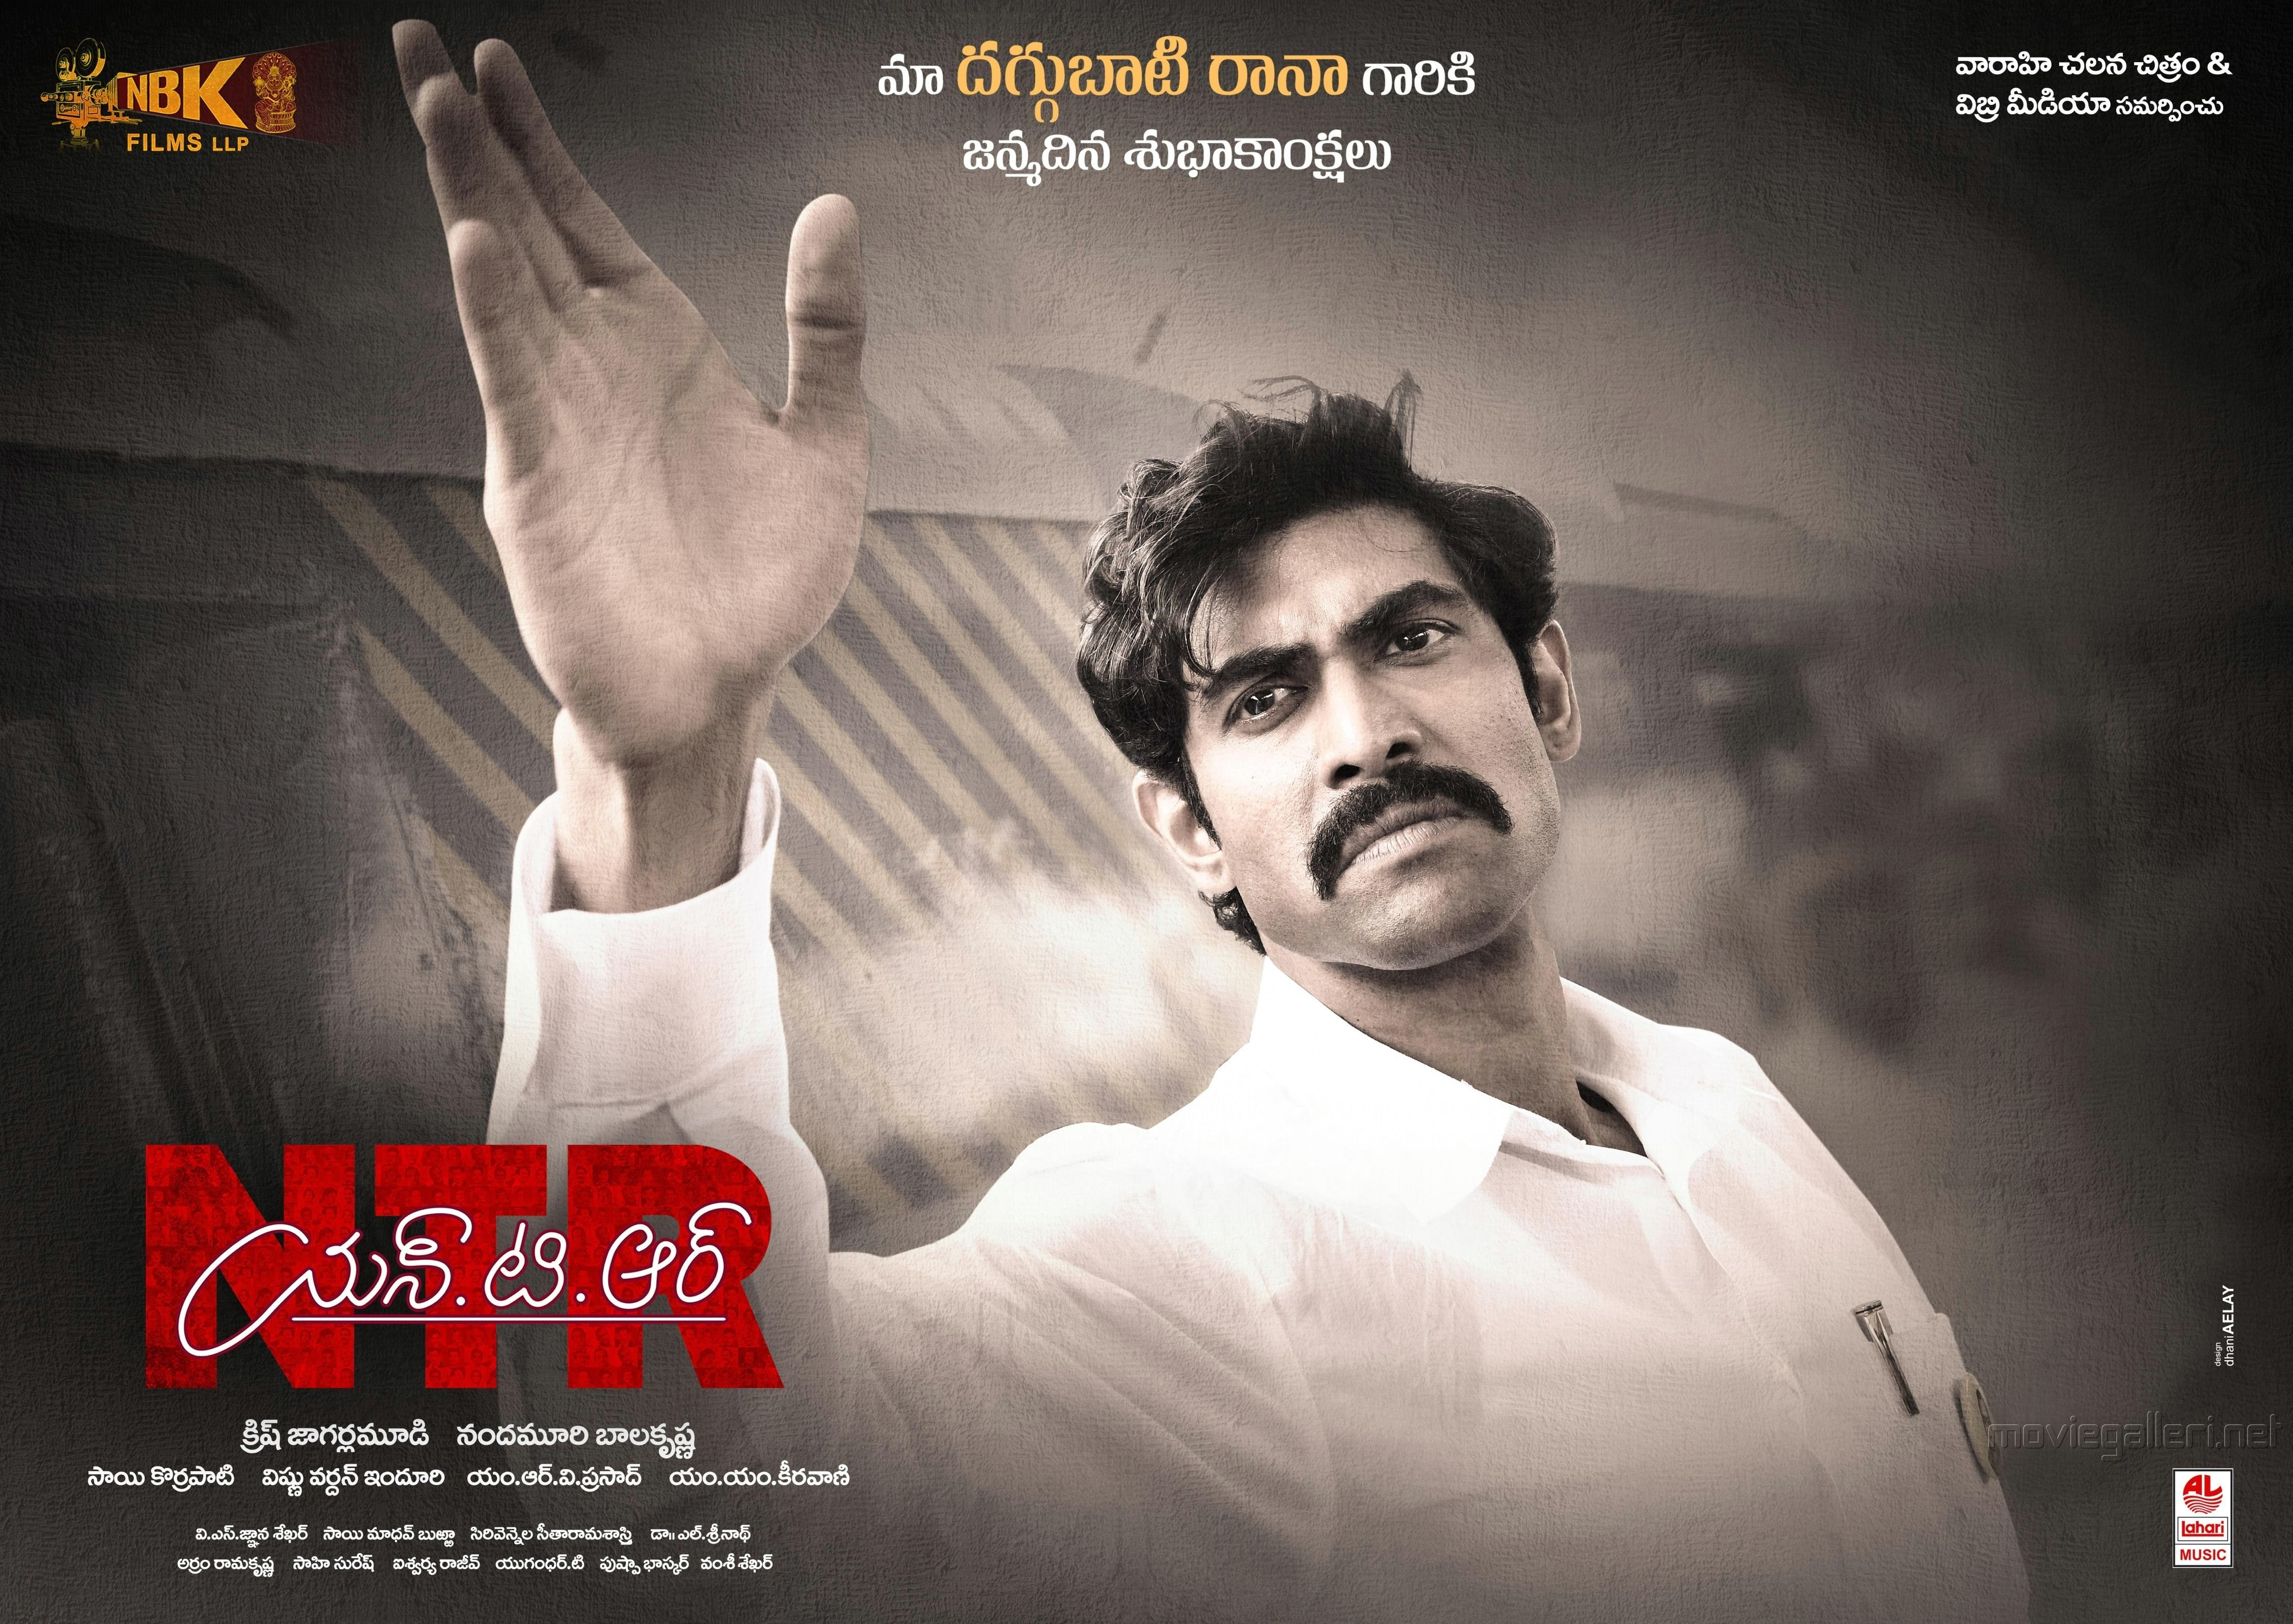 Actor Rana Daggubati Birthday Wishes Poster HD as Nara Chandrababu Naidu From NTR Biopic